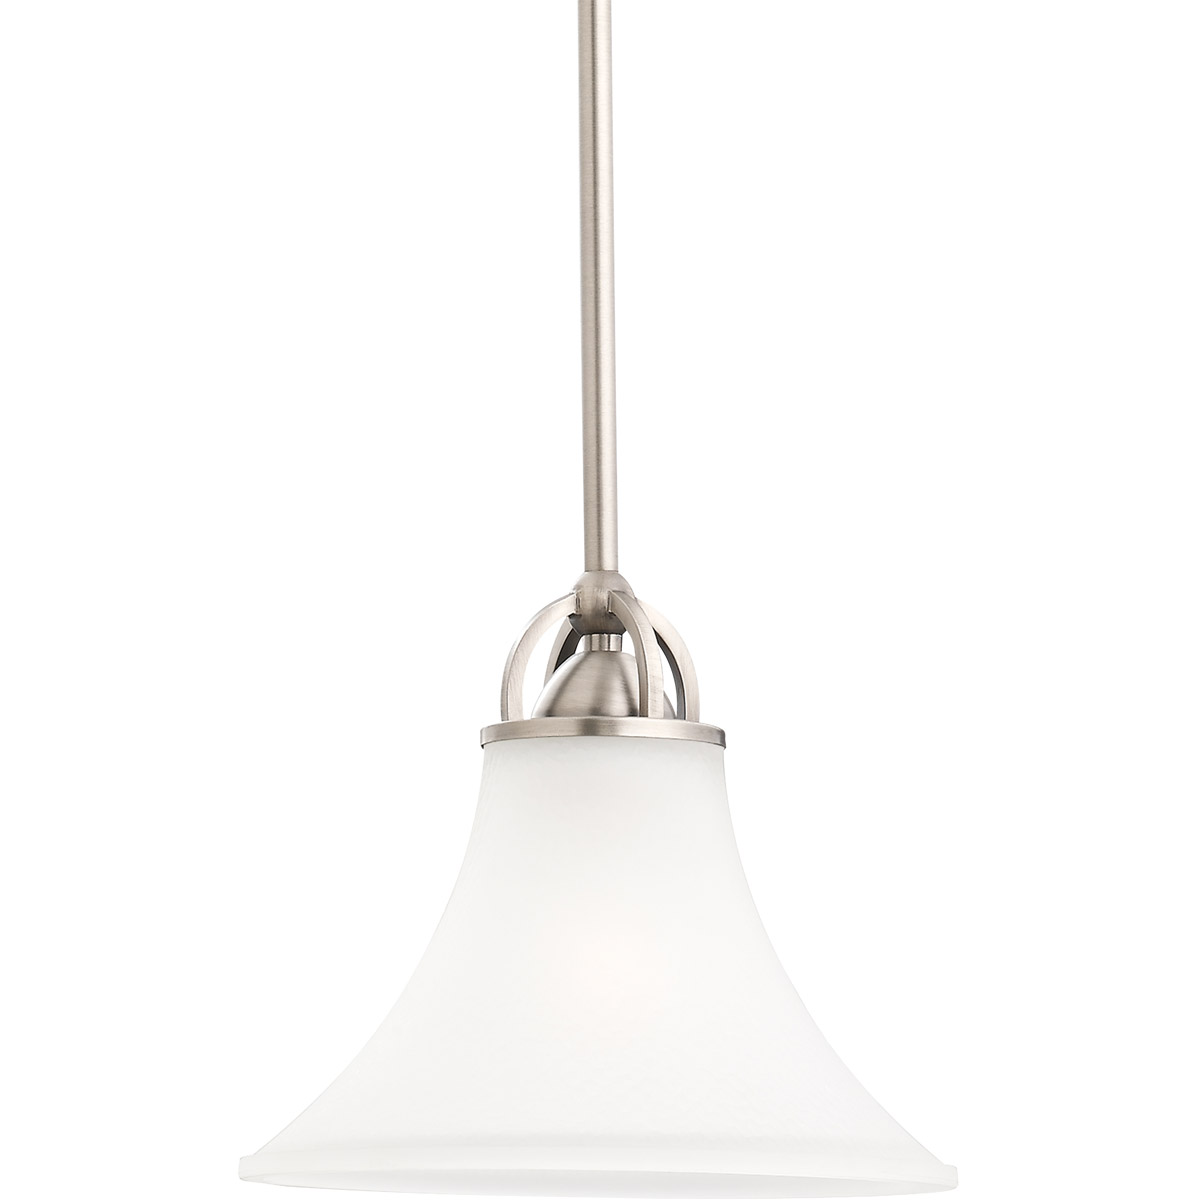 Sea Gull Lighting Somerton 1 Light Mini Pendant in Antique Brushed Nickel 61375-965 photo